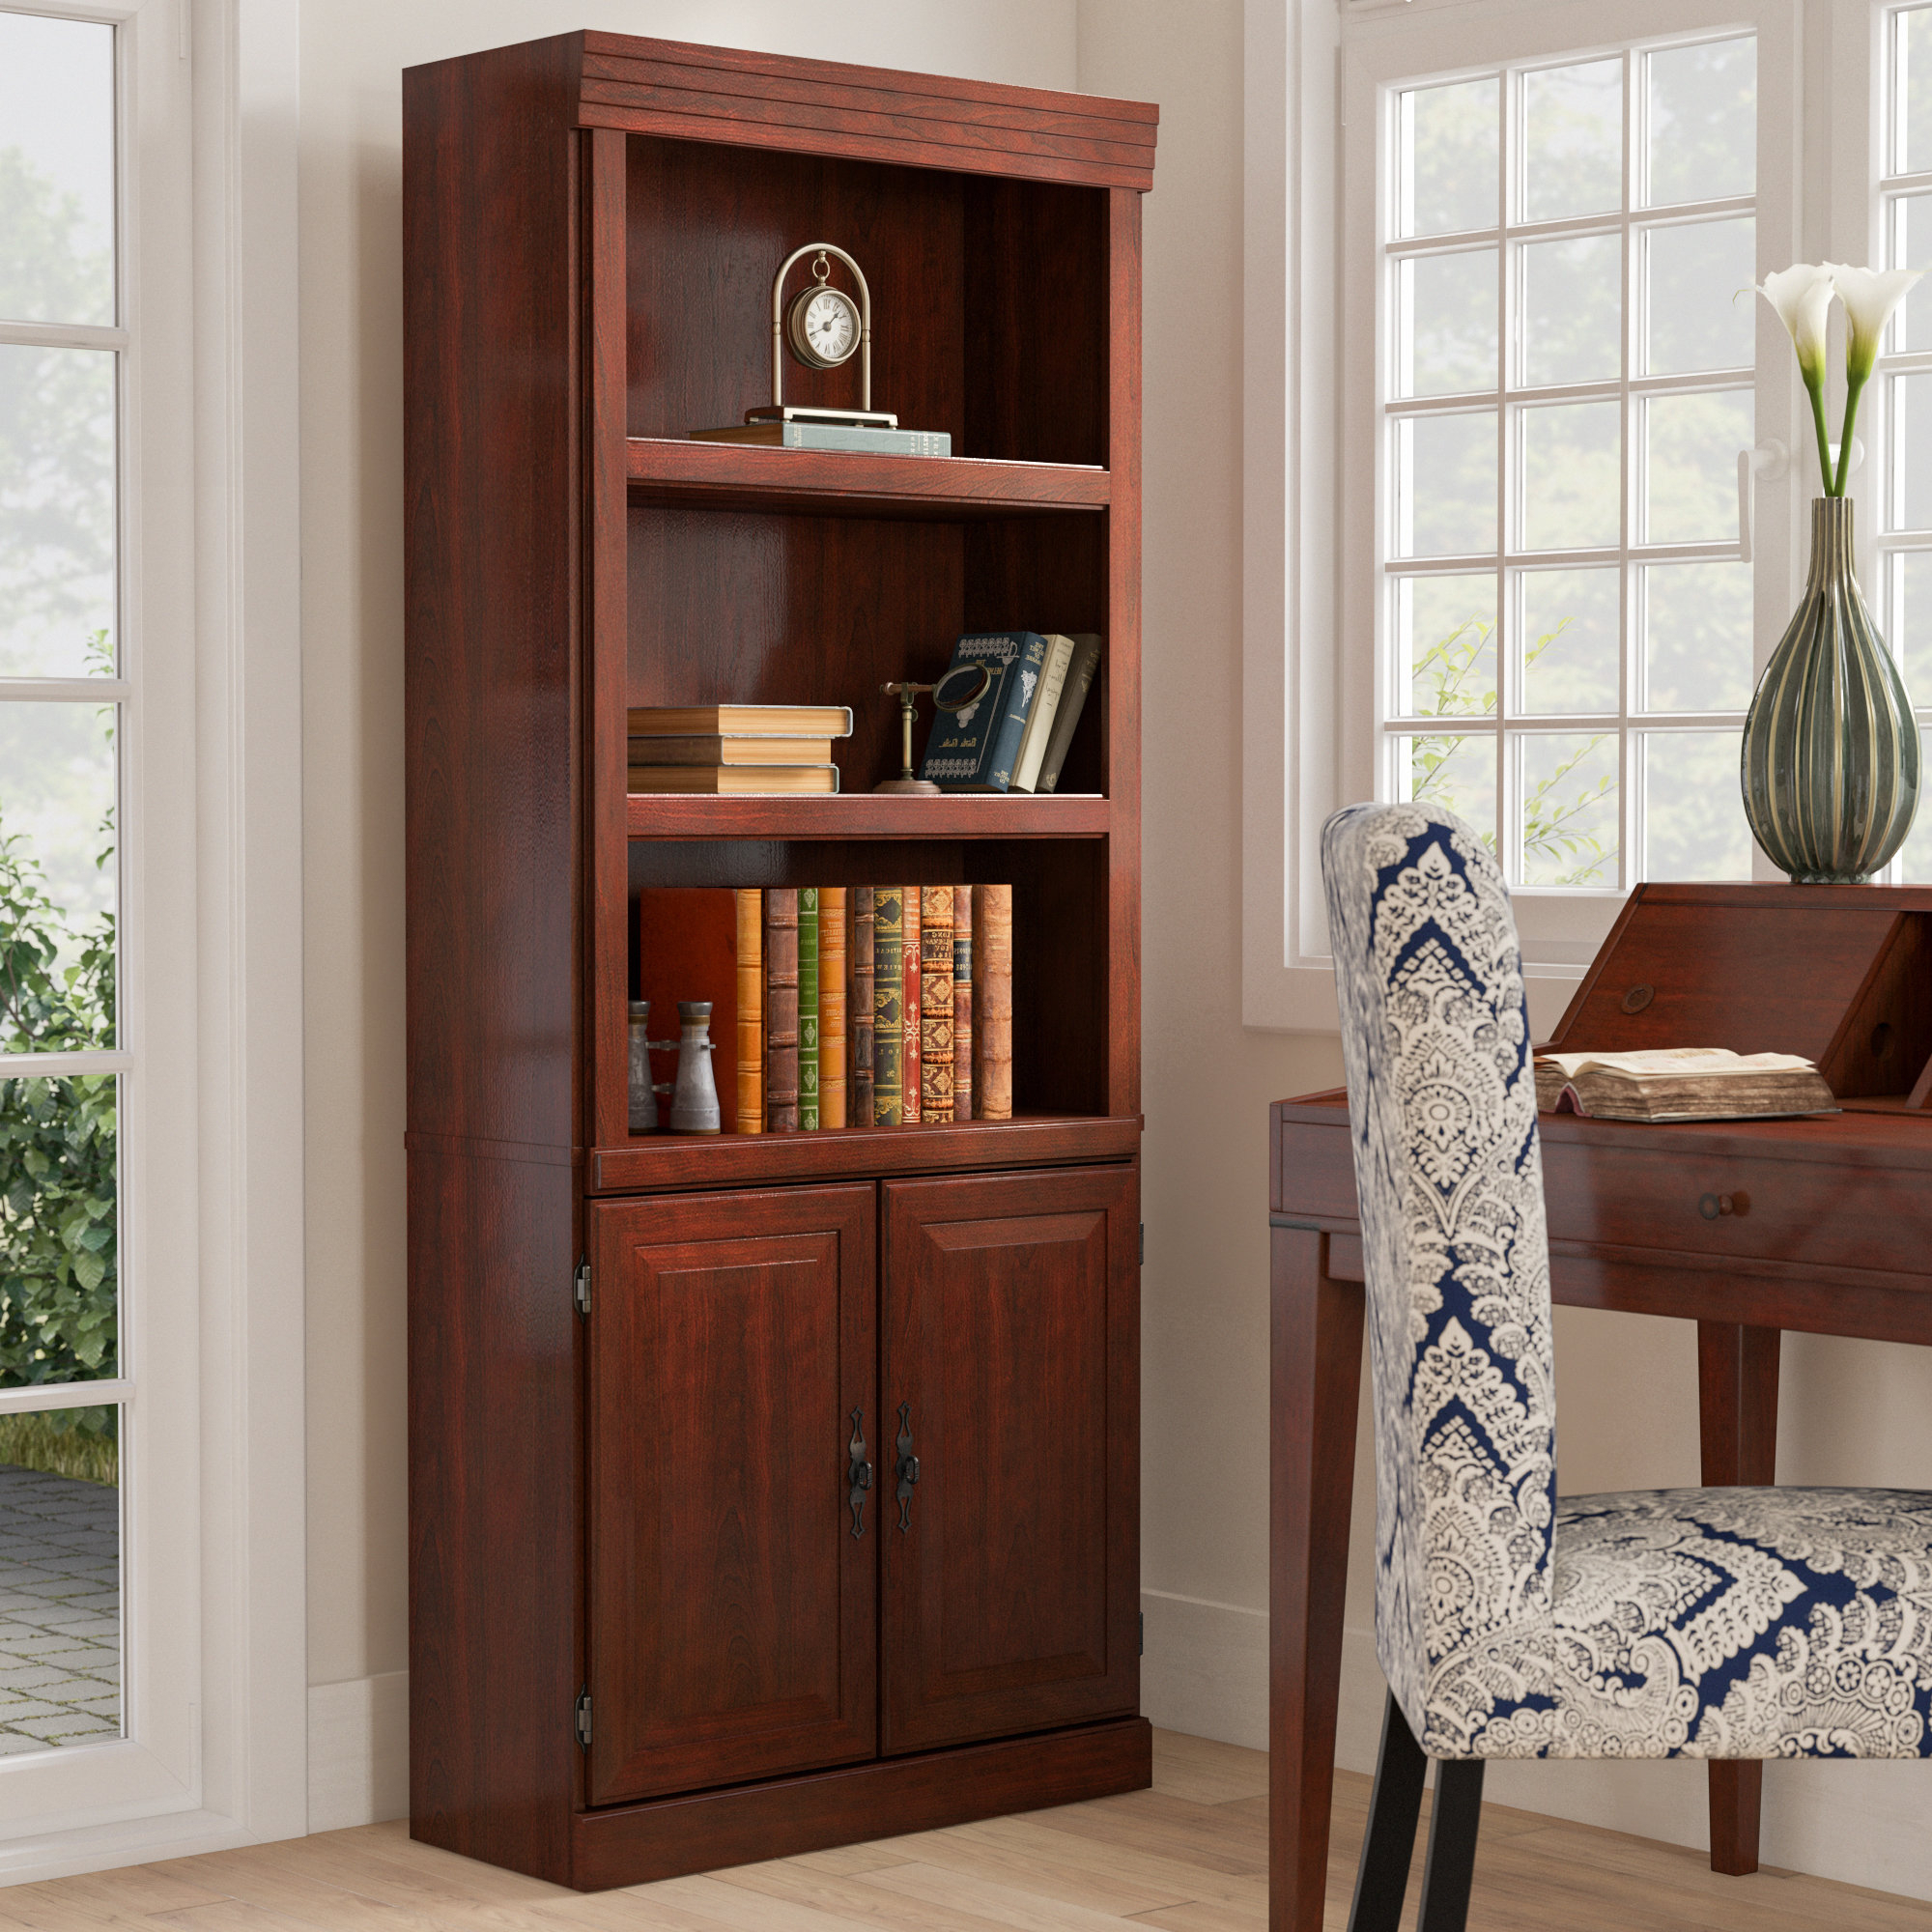 Widely Used Darby Home Co Clintonville Standard Bookcase & Reviews Regarding Walworth Standard Bookcases (View 19 of 20)